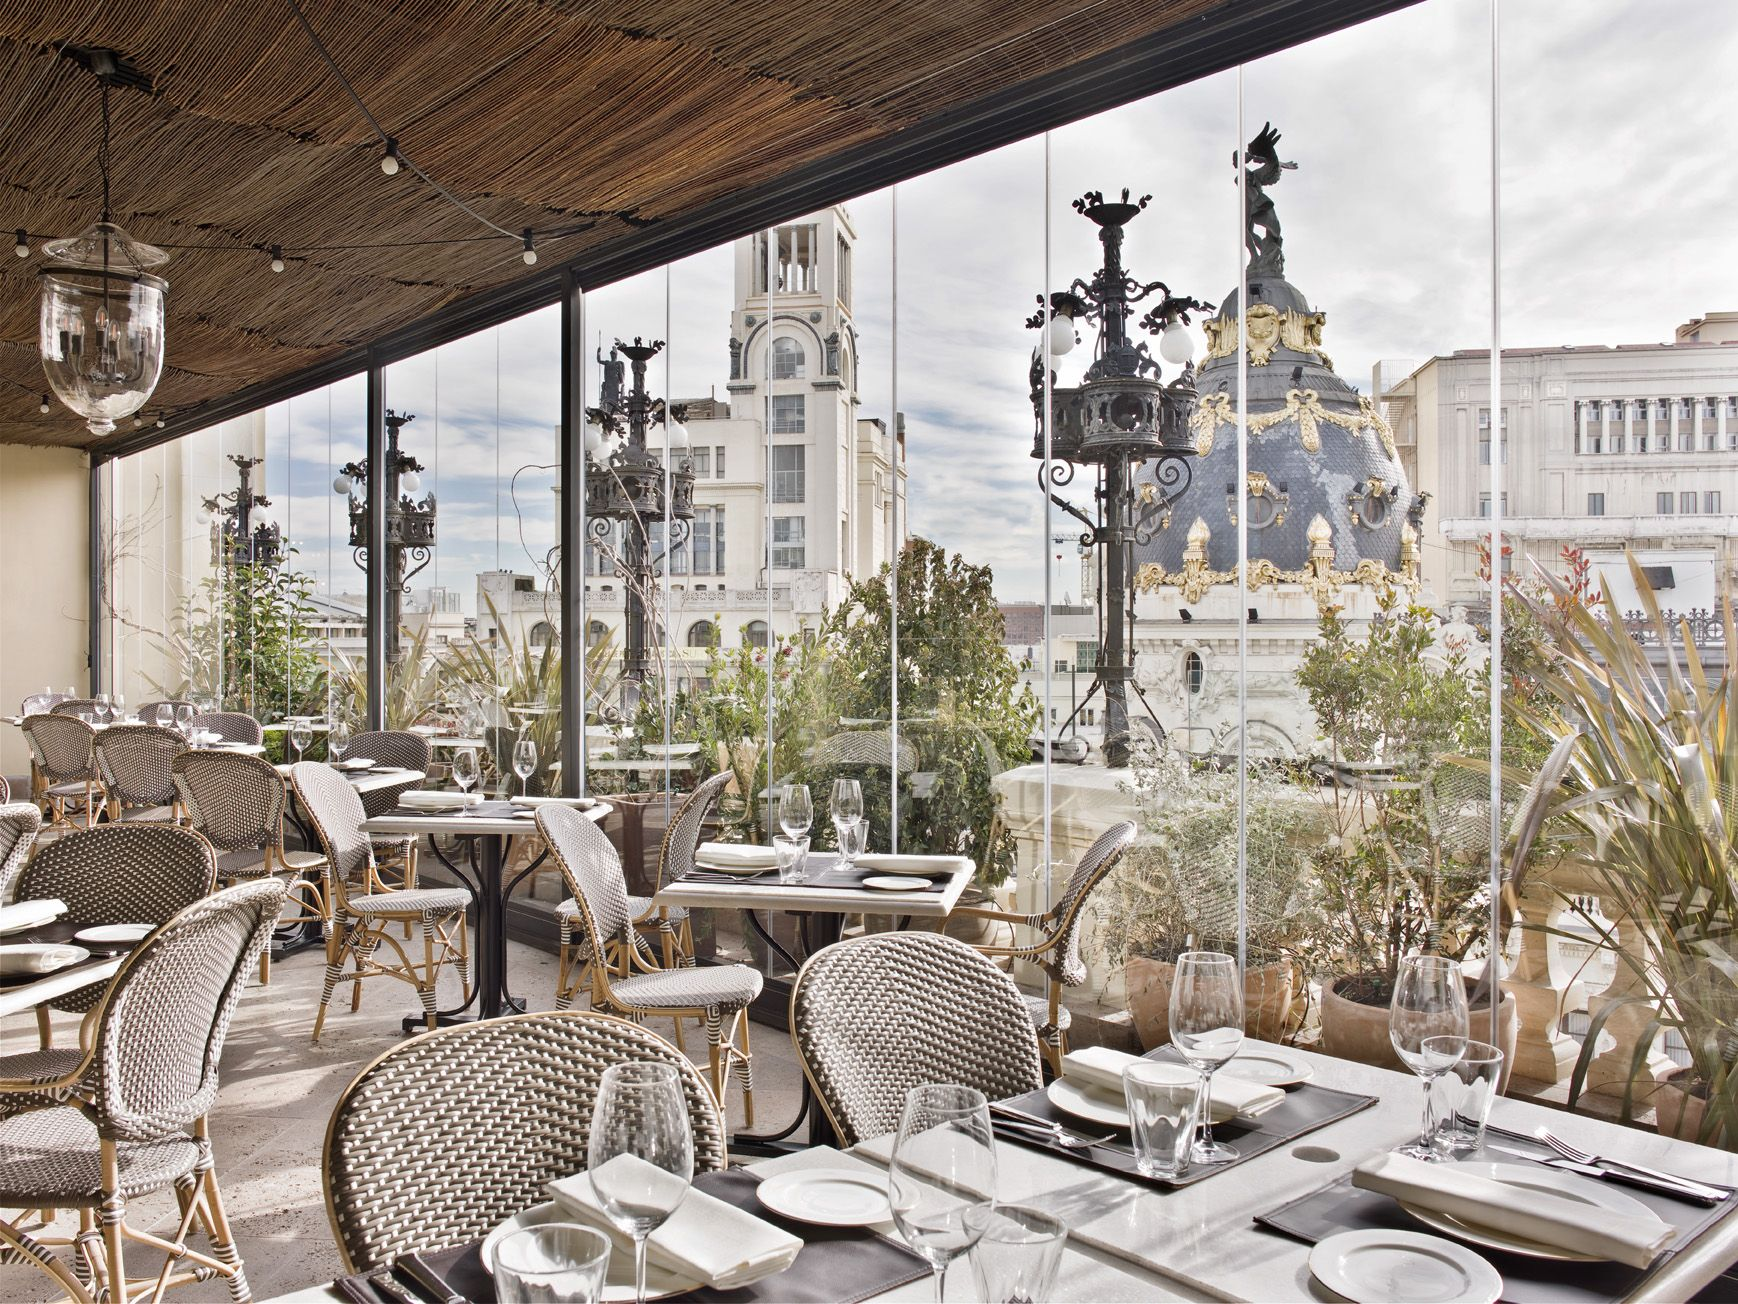 How To Make An Interesting Art Piece Using Tree Branches Ehow Madrid Hotels Madrid Restaurants Opulent Interiors